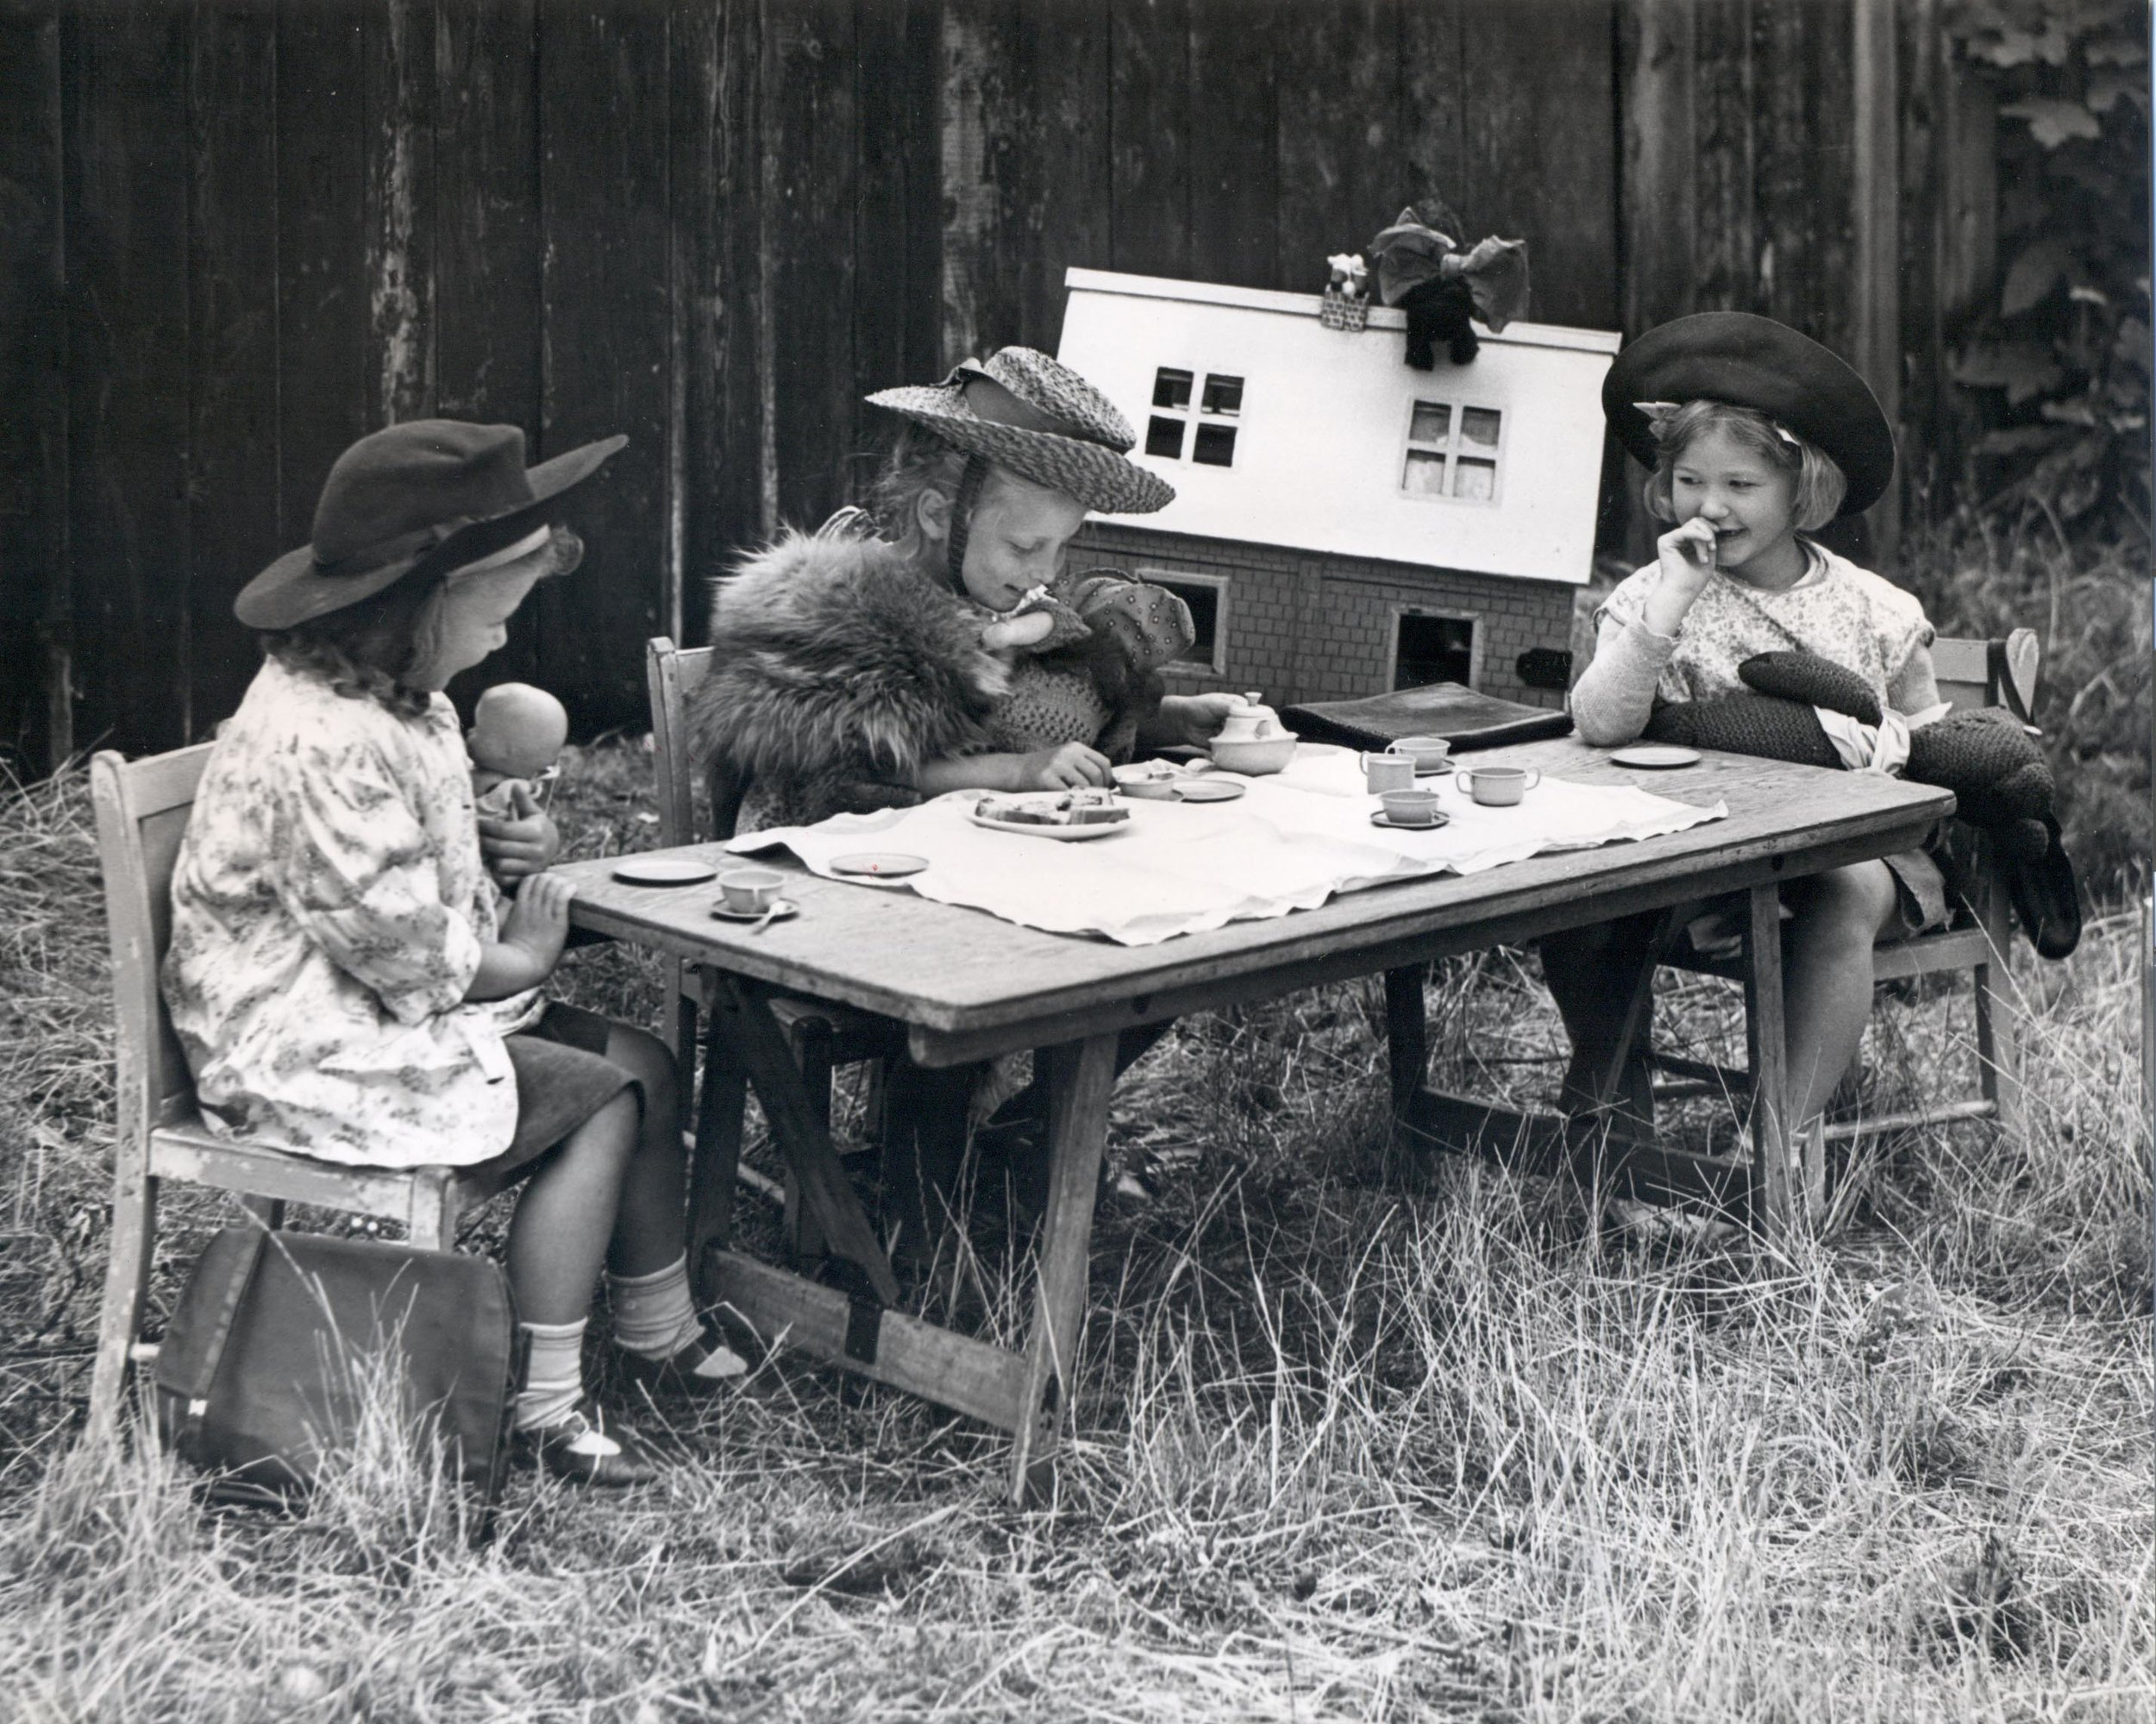 Wall End Day Nursery, The Tea Party, 1949. Copyright © London Borough of Newham Archives.